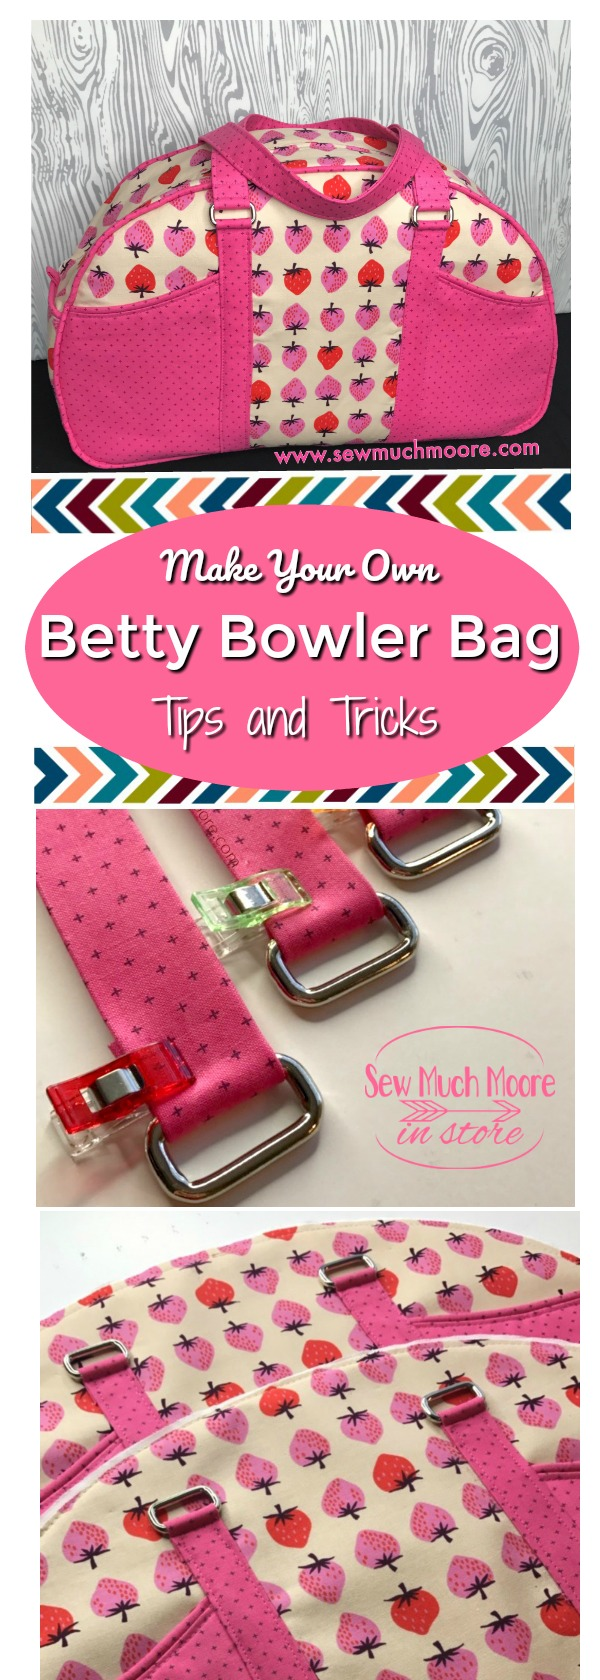 Betty Bowler Bag Instructions